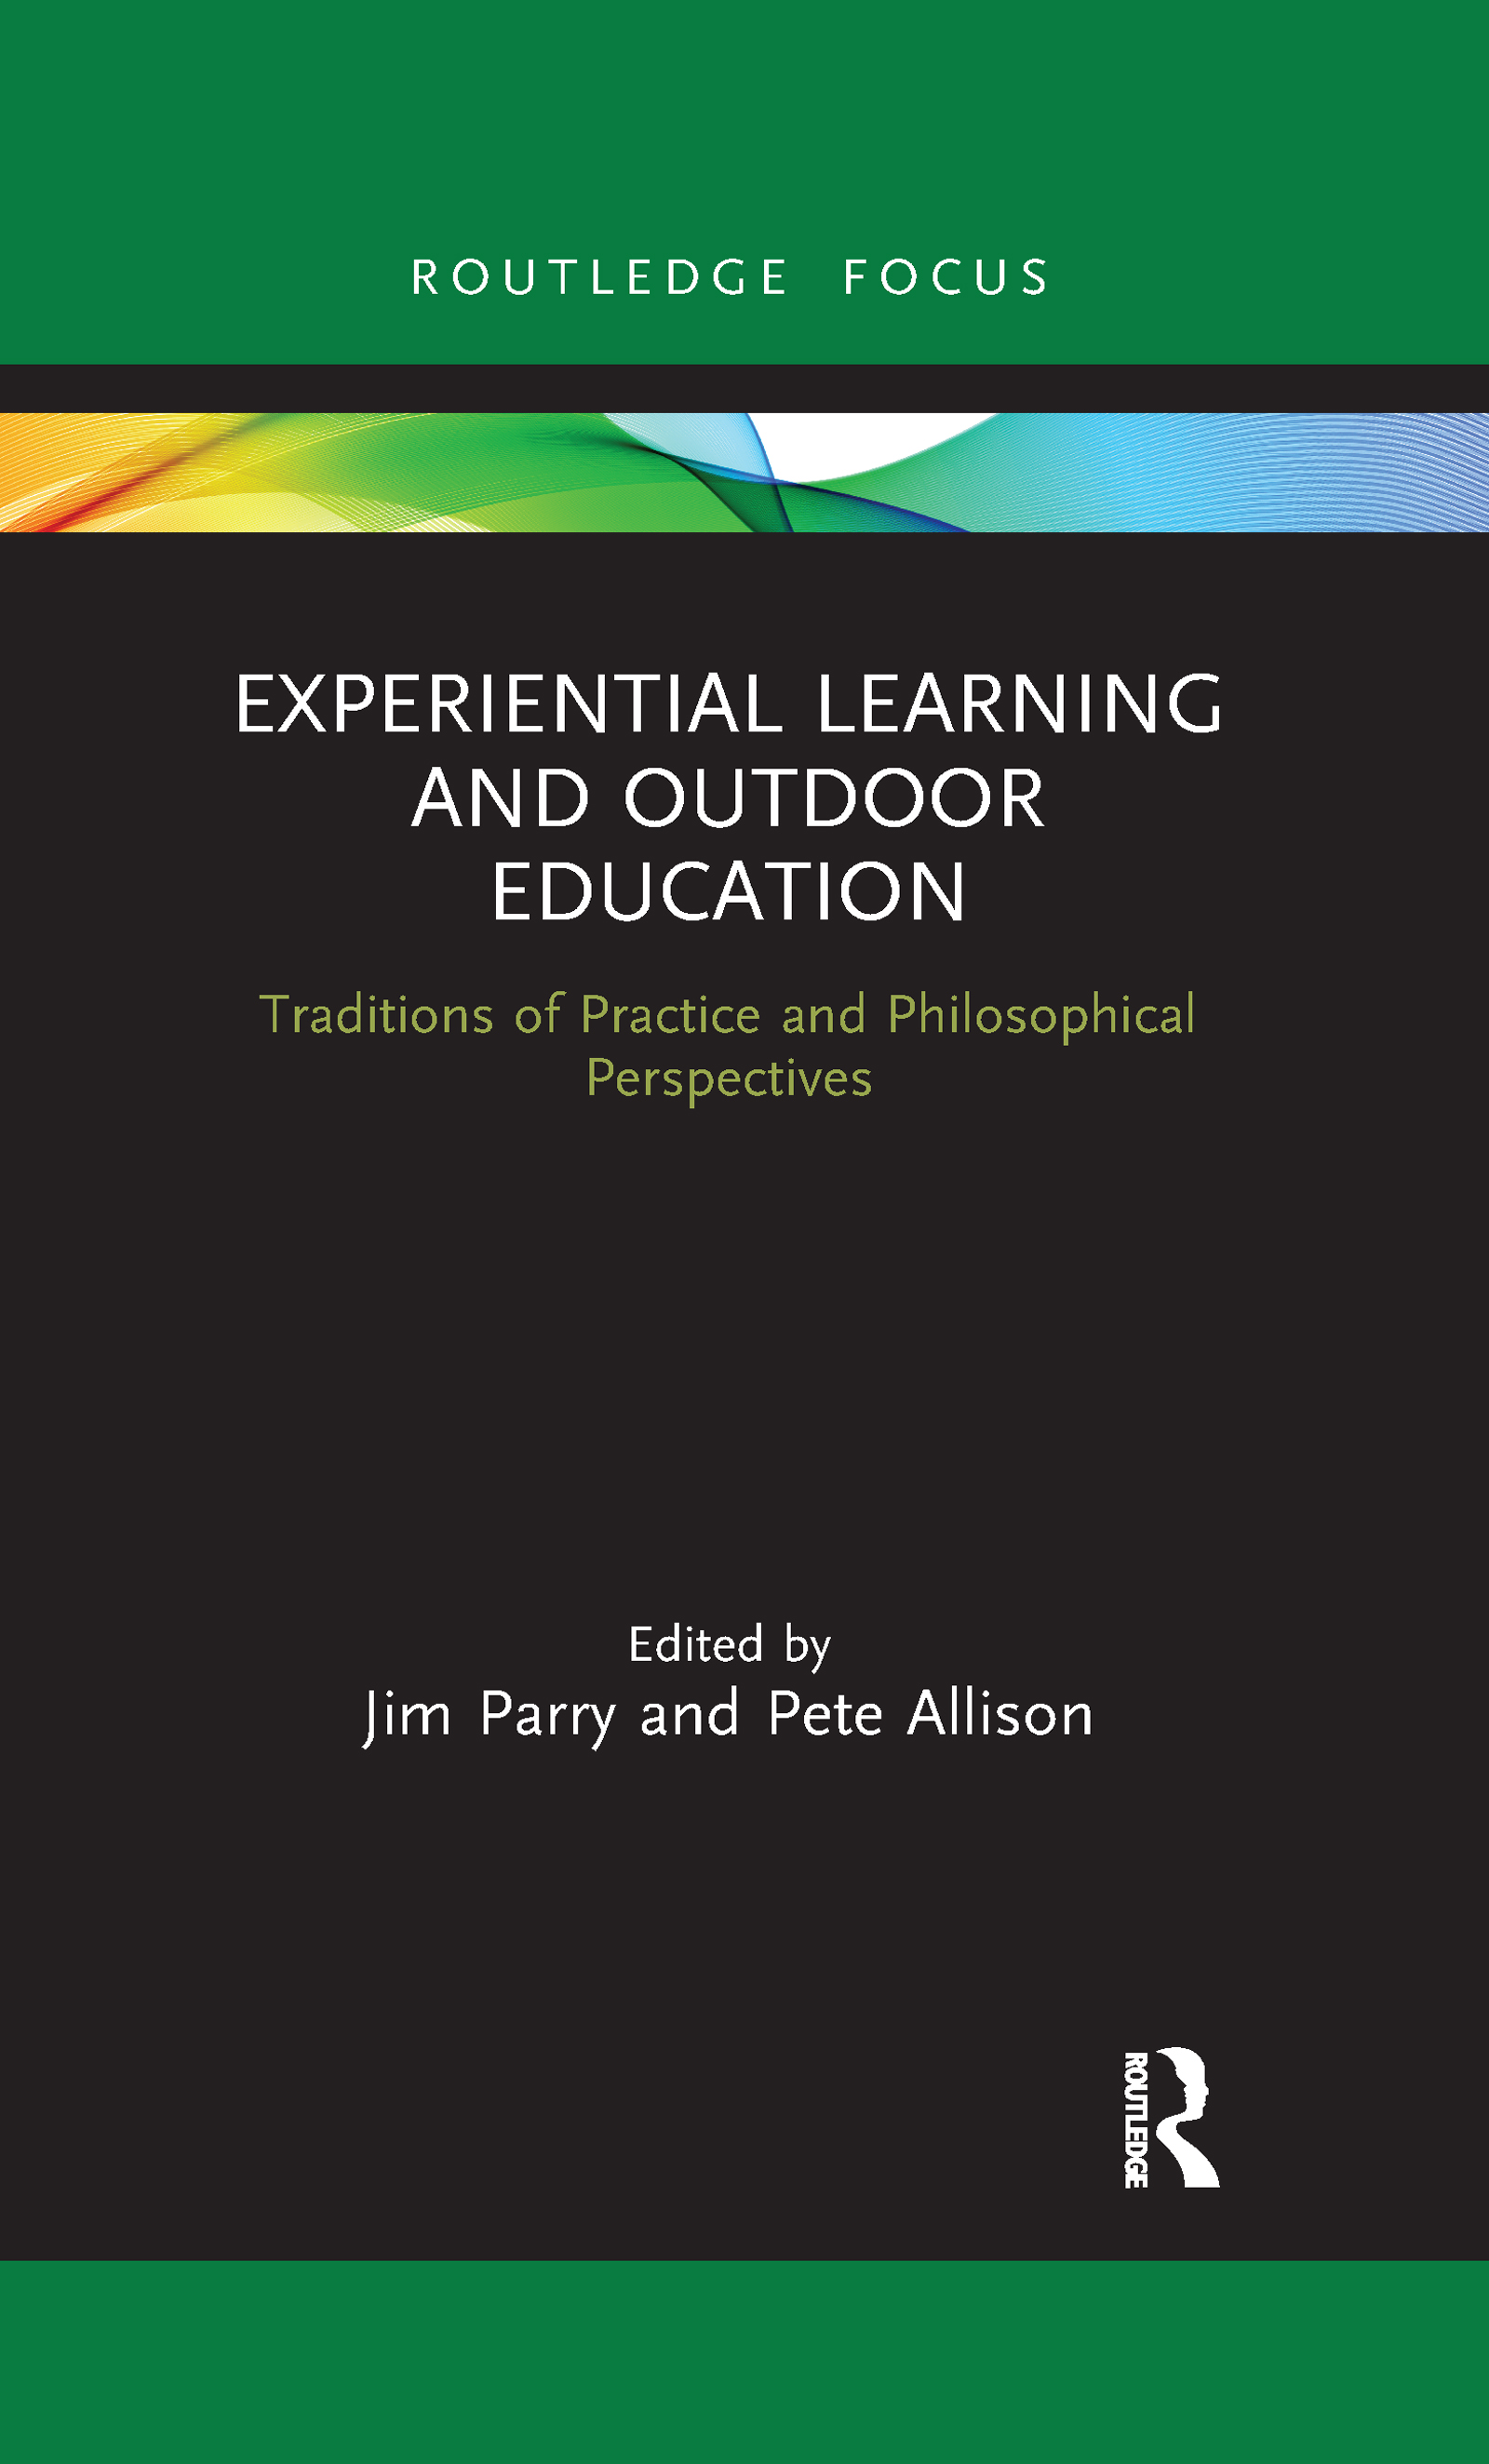 Experiential Learning and Outdoor Education